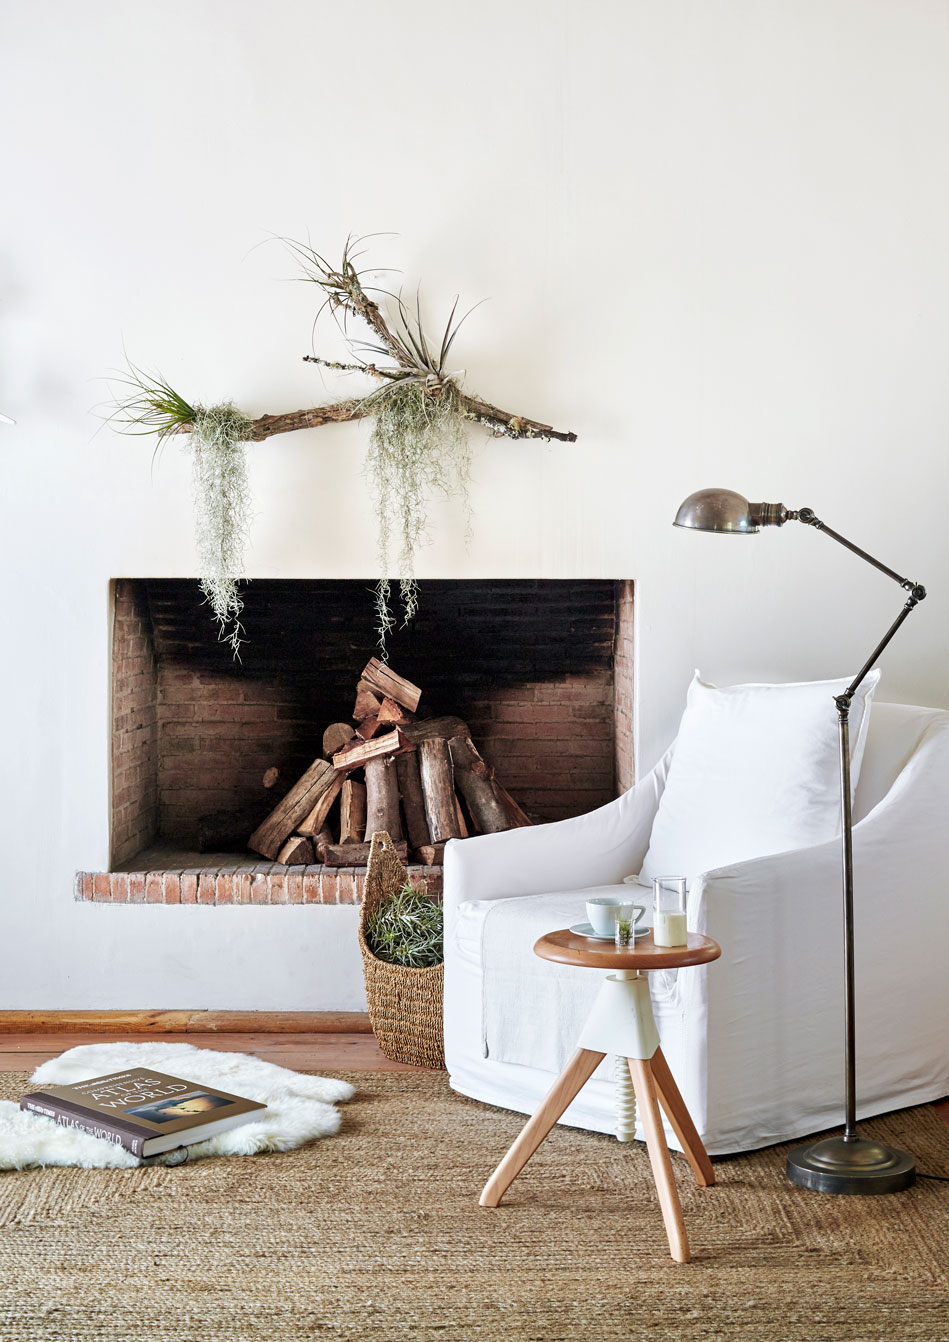 ARTISTIC LICENCE   Look to nature and replace that painting or print above the fireplace with an organic, textured sculpture that lives and breathes. Affix a variety of air plants to a piece of driftwood using thin craft wire. Hang the driftwood sculpture from a picture hook or nail as you would a framed painting (use craft wire or transparent fishing gut, depending on the weight of the driftwood). 